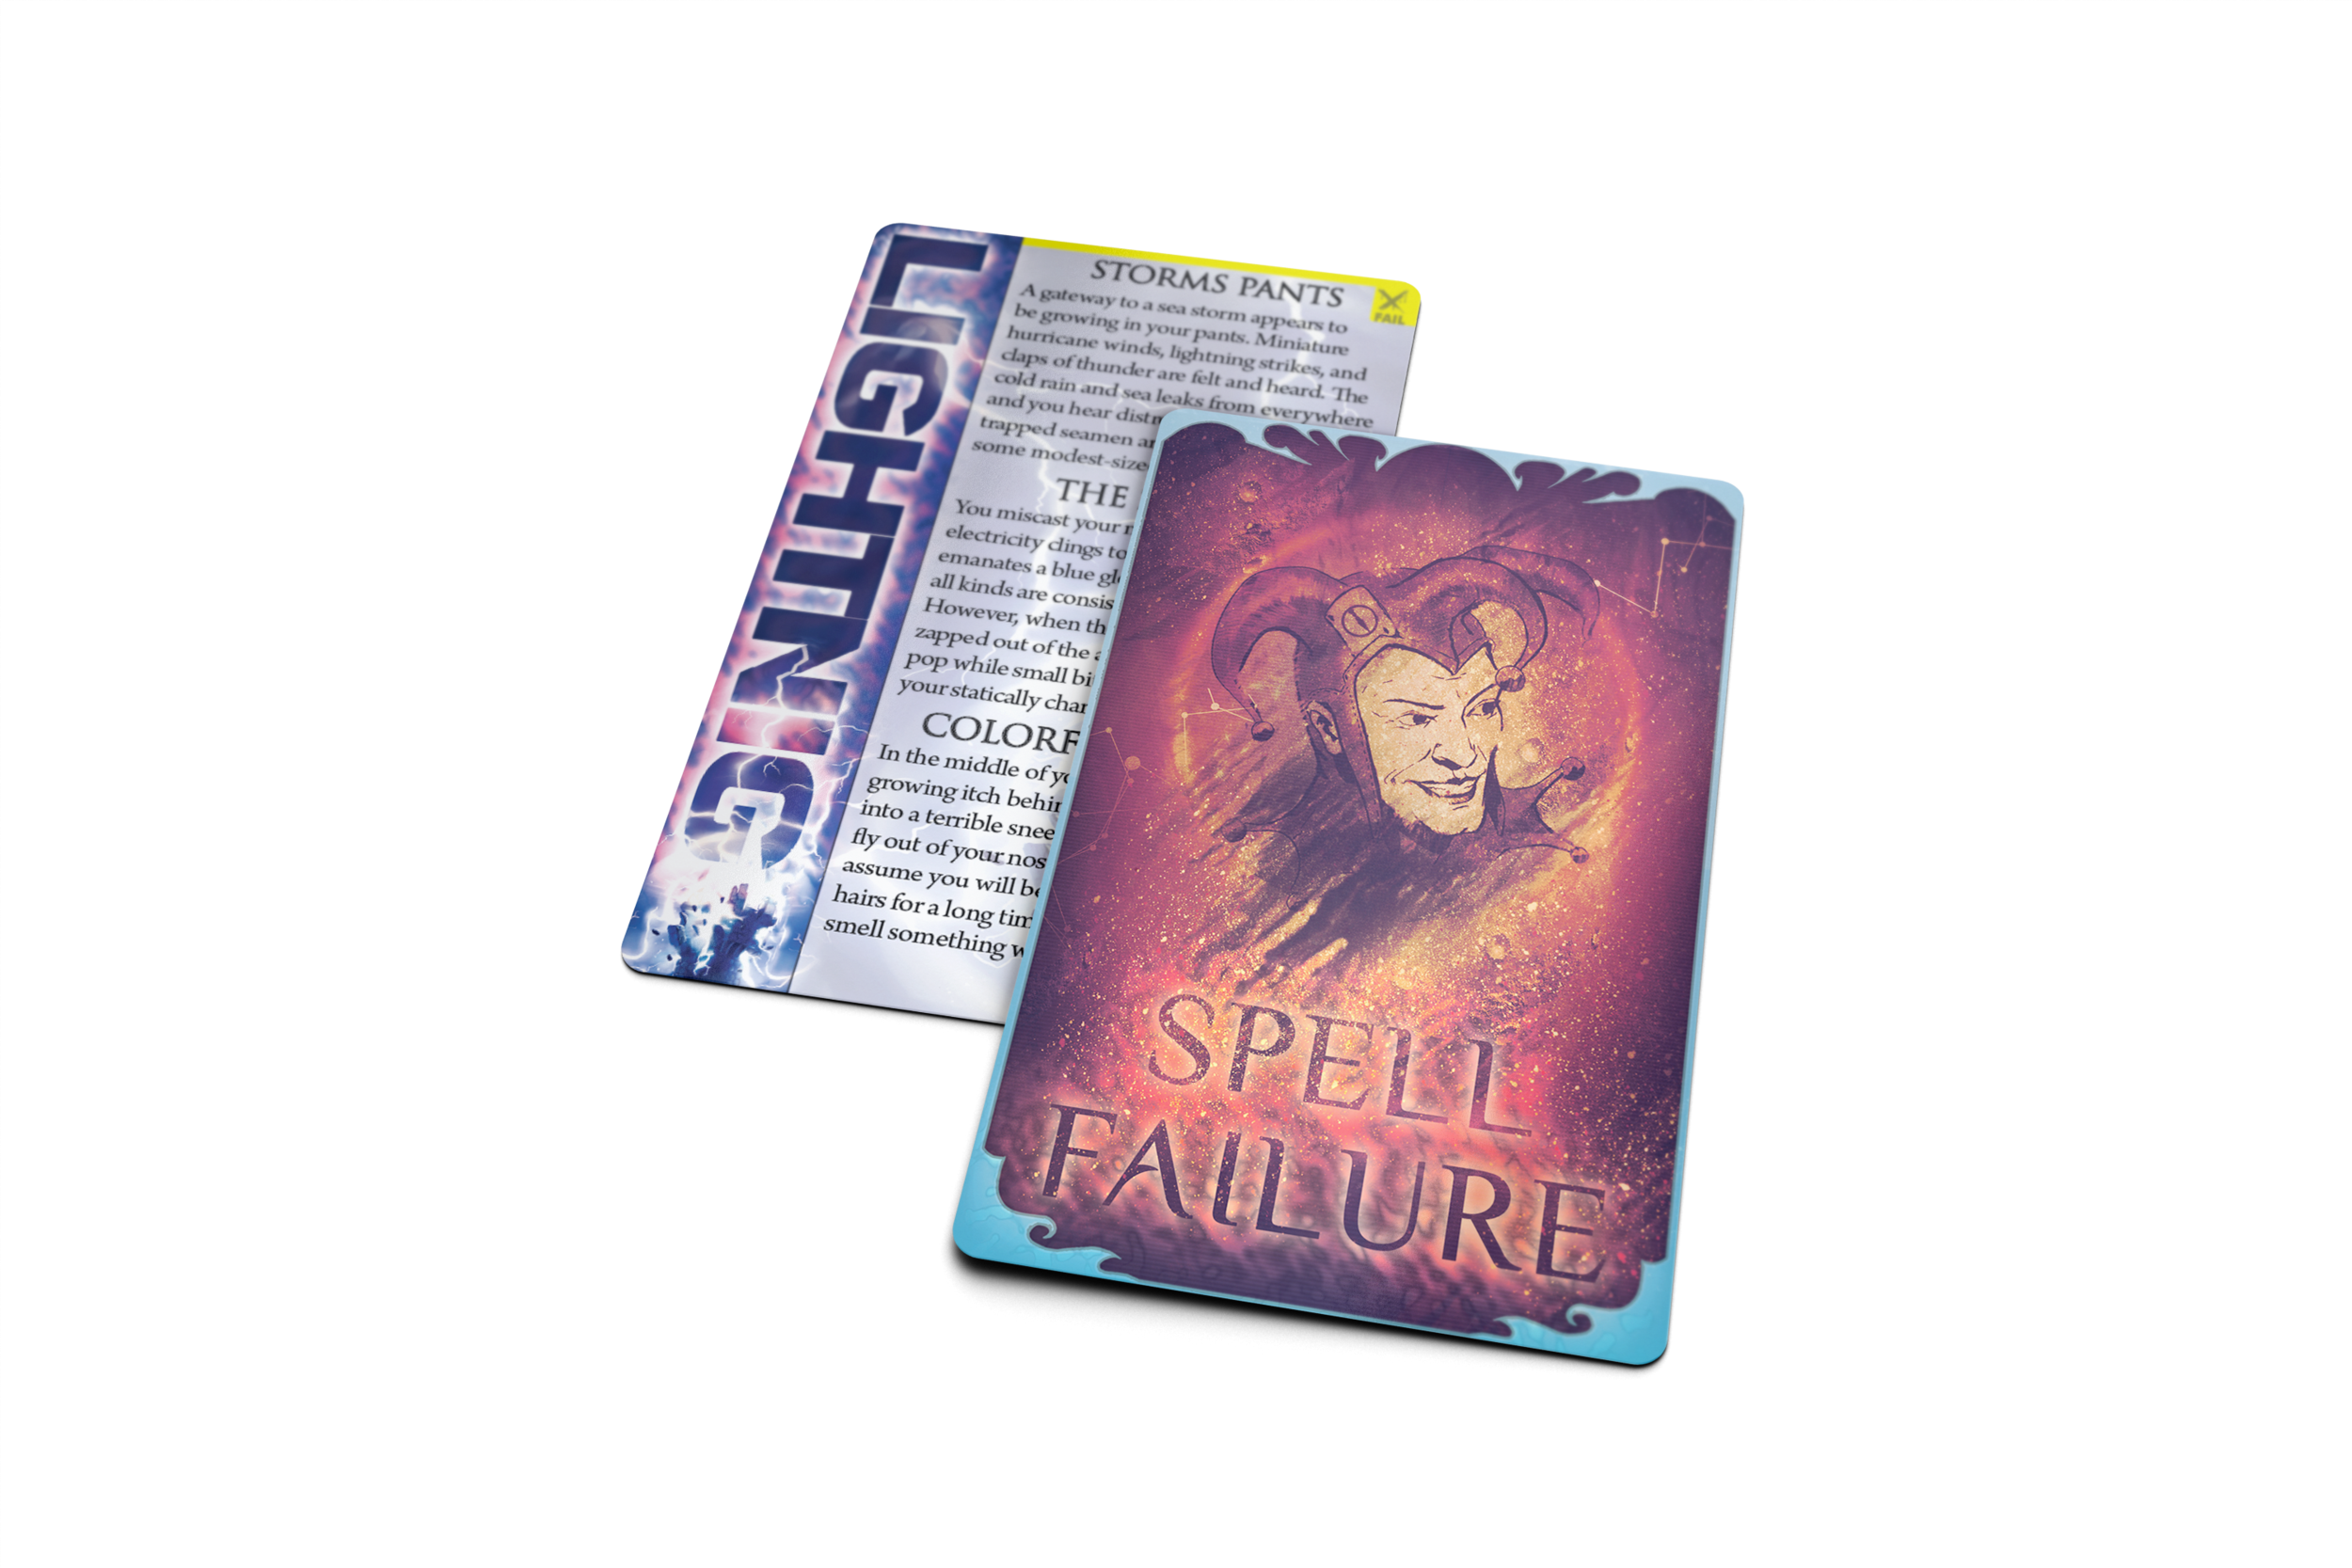 Includes spell failures